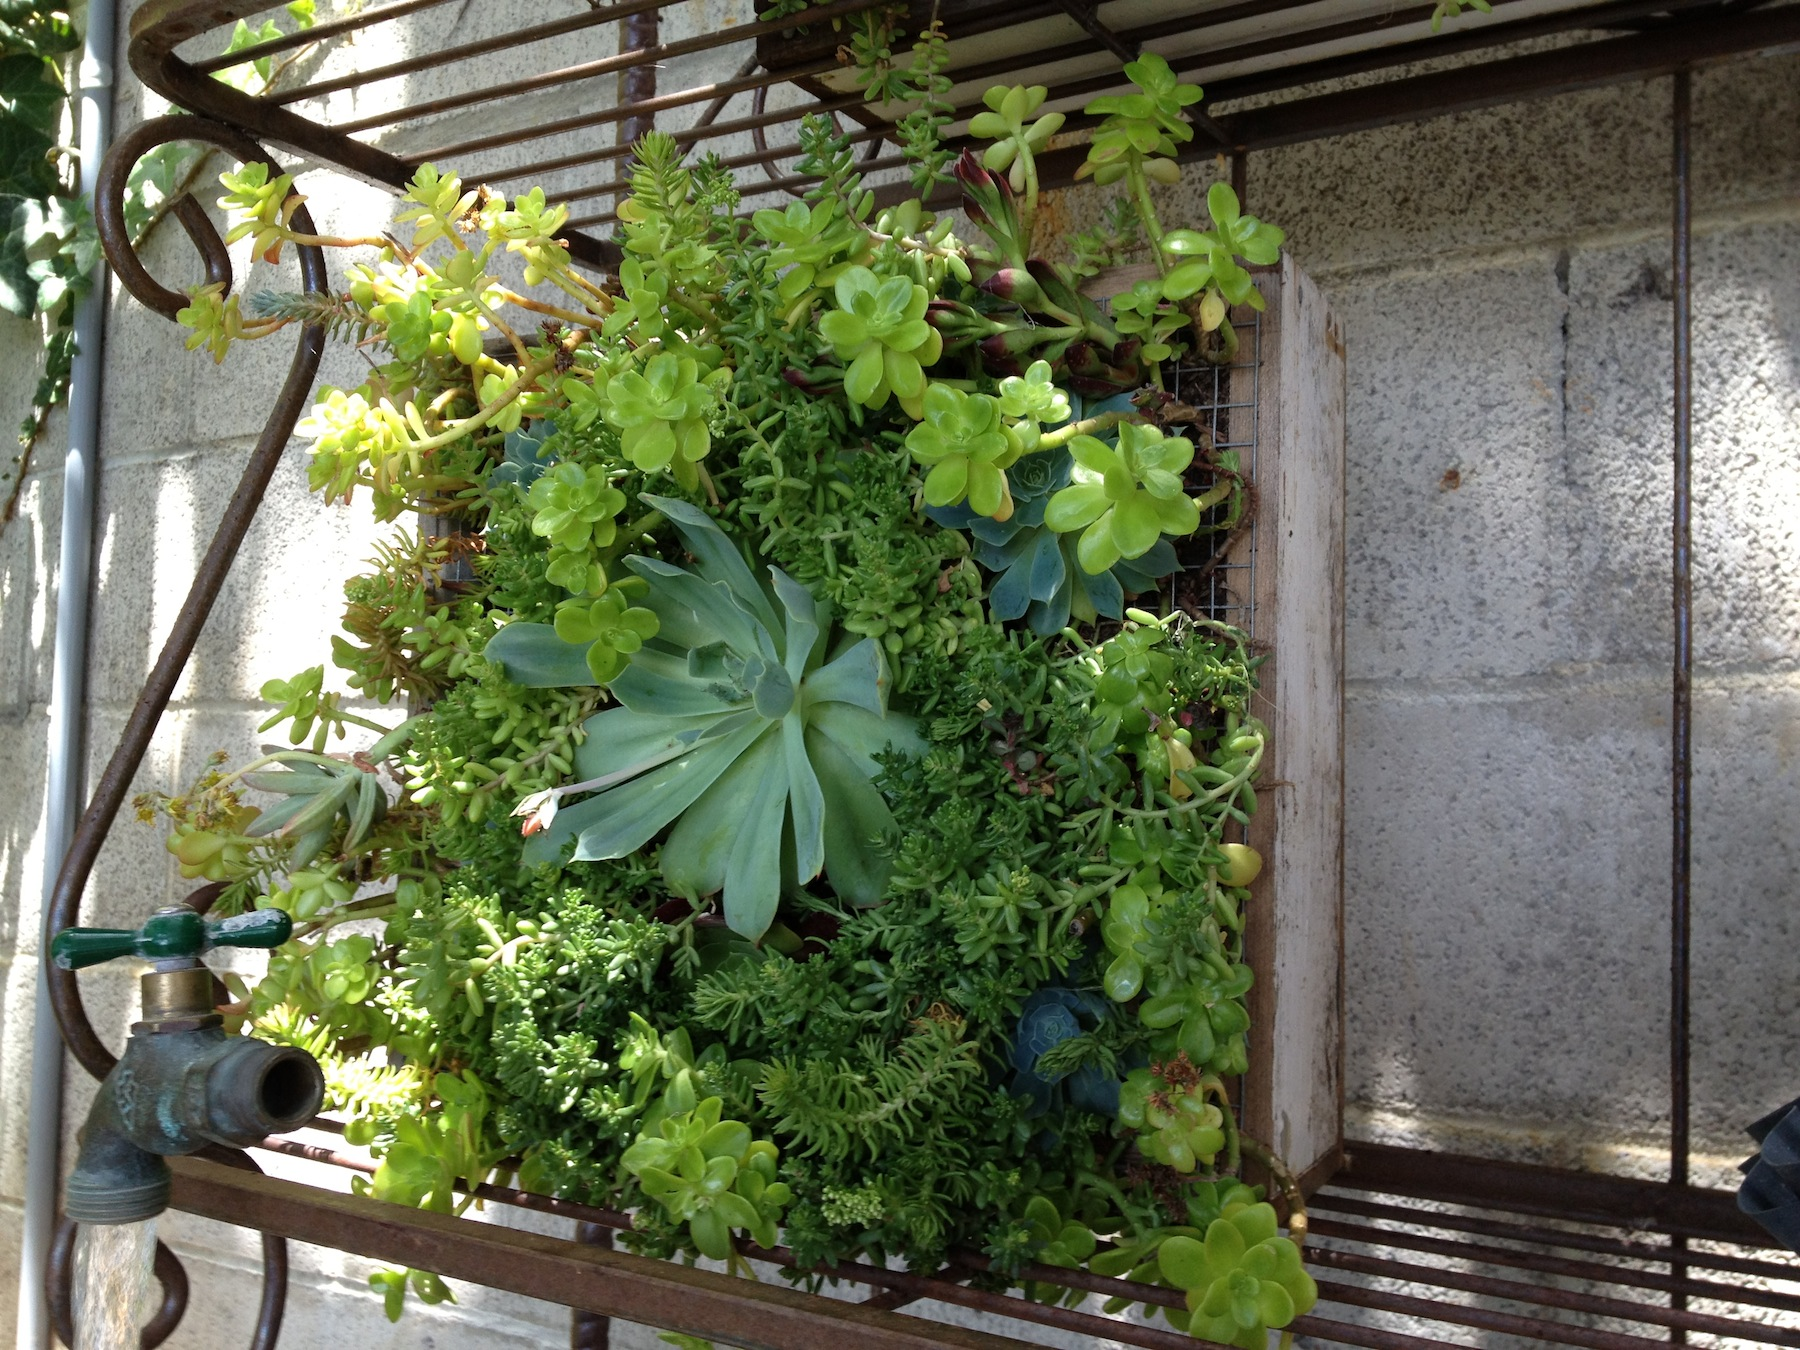 5 Easy Steps To Gardening For Apartment-Dwellers